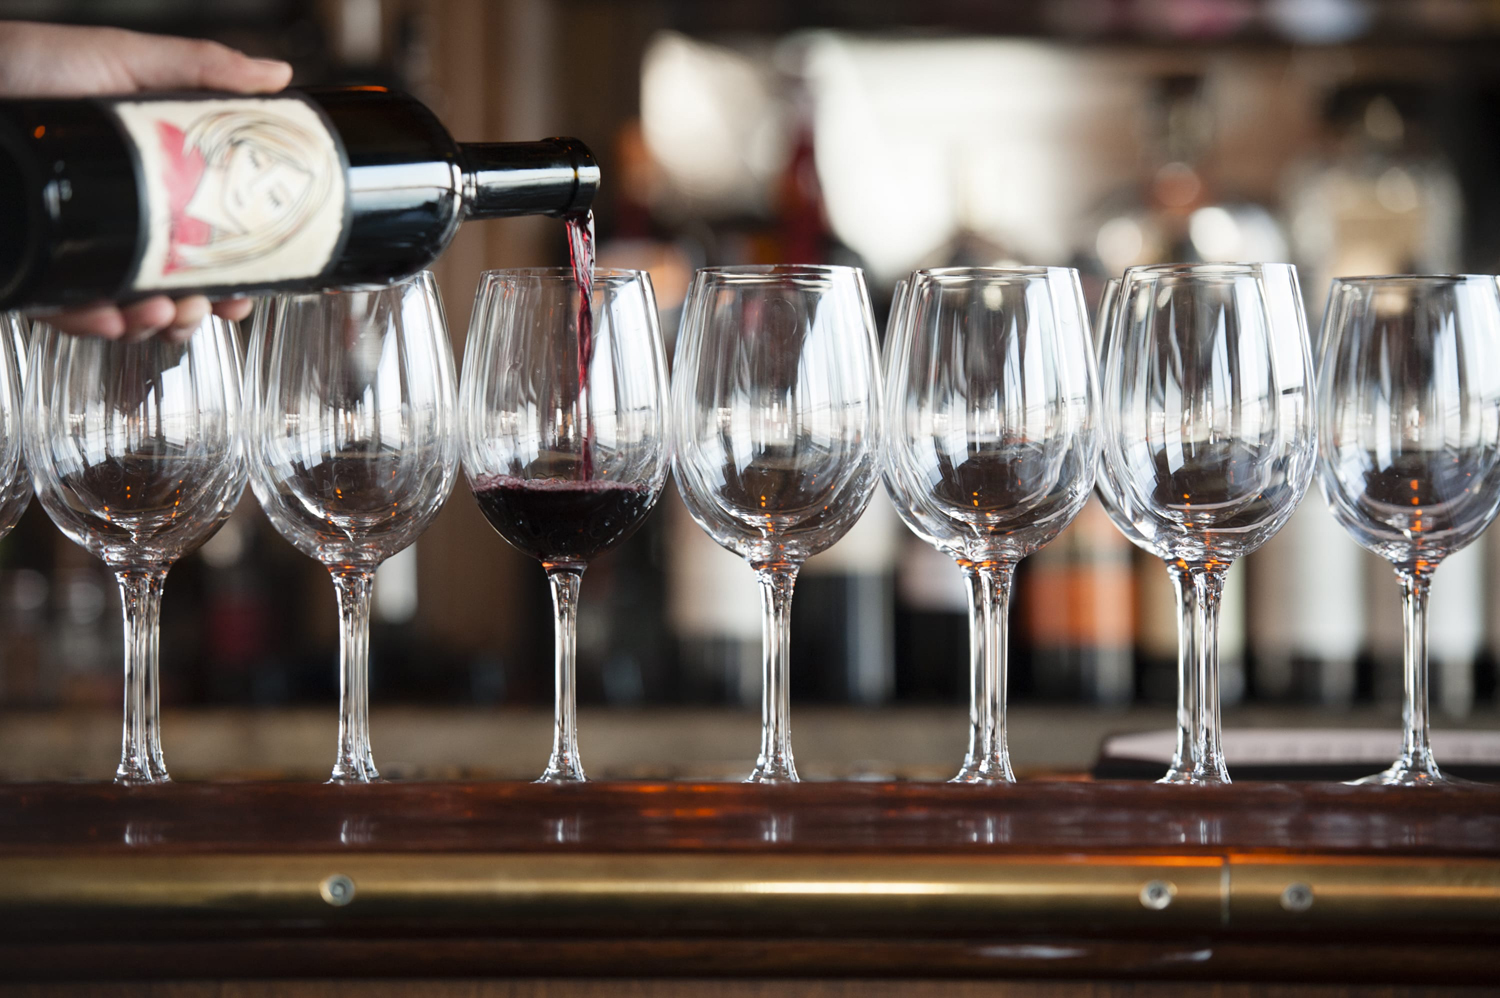 UnCruise Adventureshas updated its wine itinerarywith additional departures for 2017.